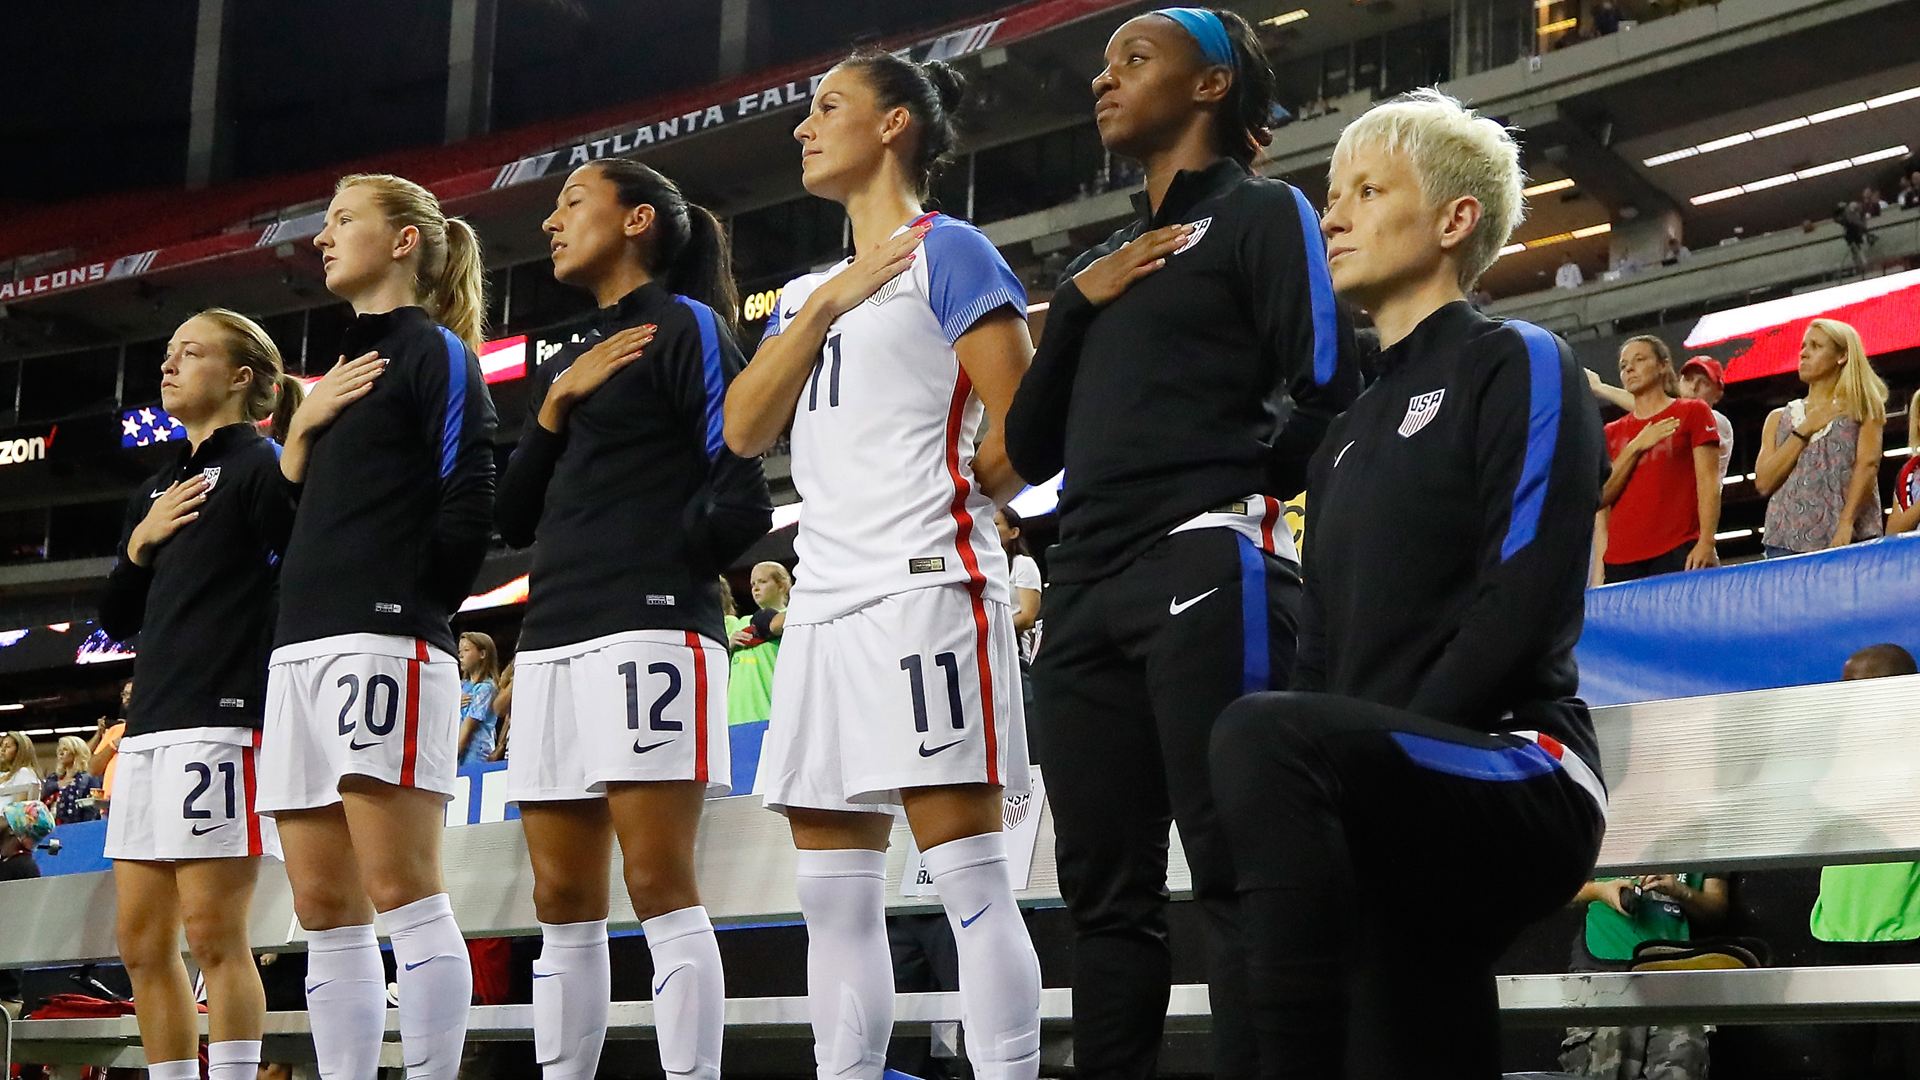 Megan Rapinoe #15 kneels during the national anthem before a match between the United States and the Netherlands at Georgia Dome on Sept. 18, 2016 in Atlanta. (Kevin C. Cox/Getty Images)